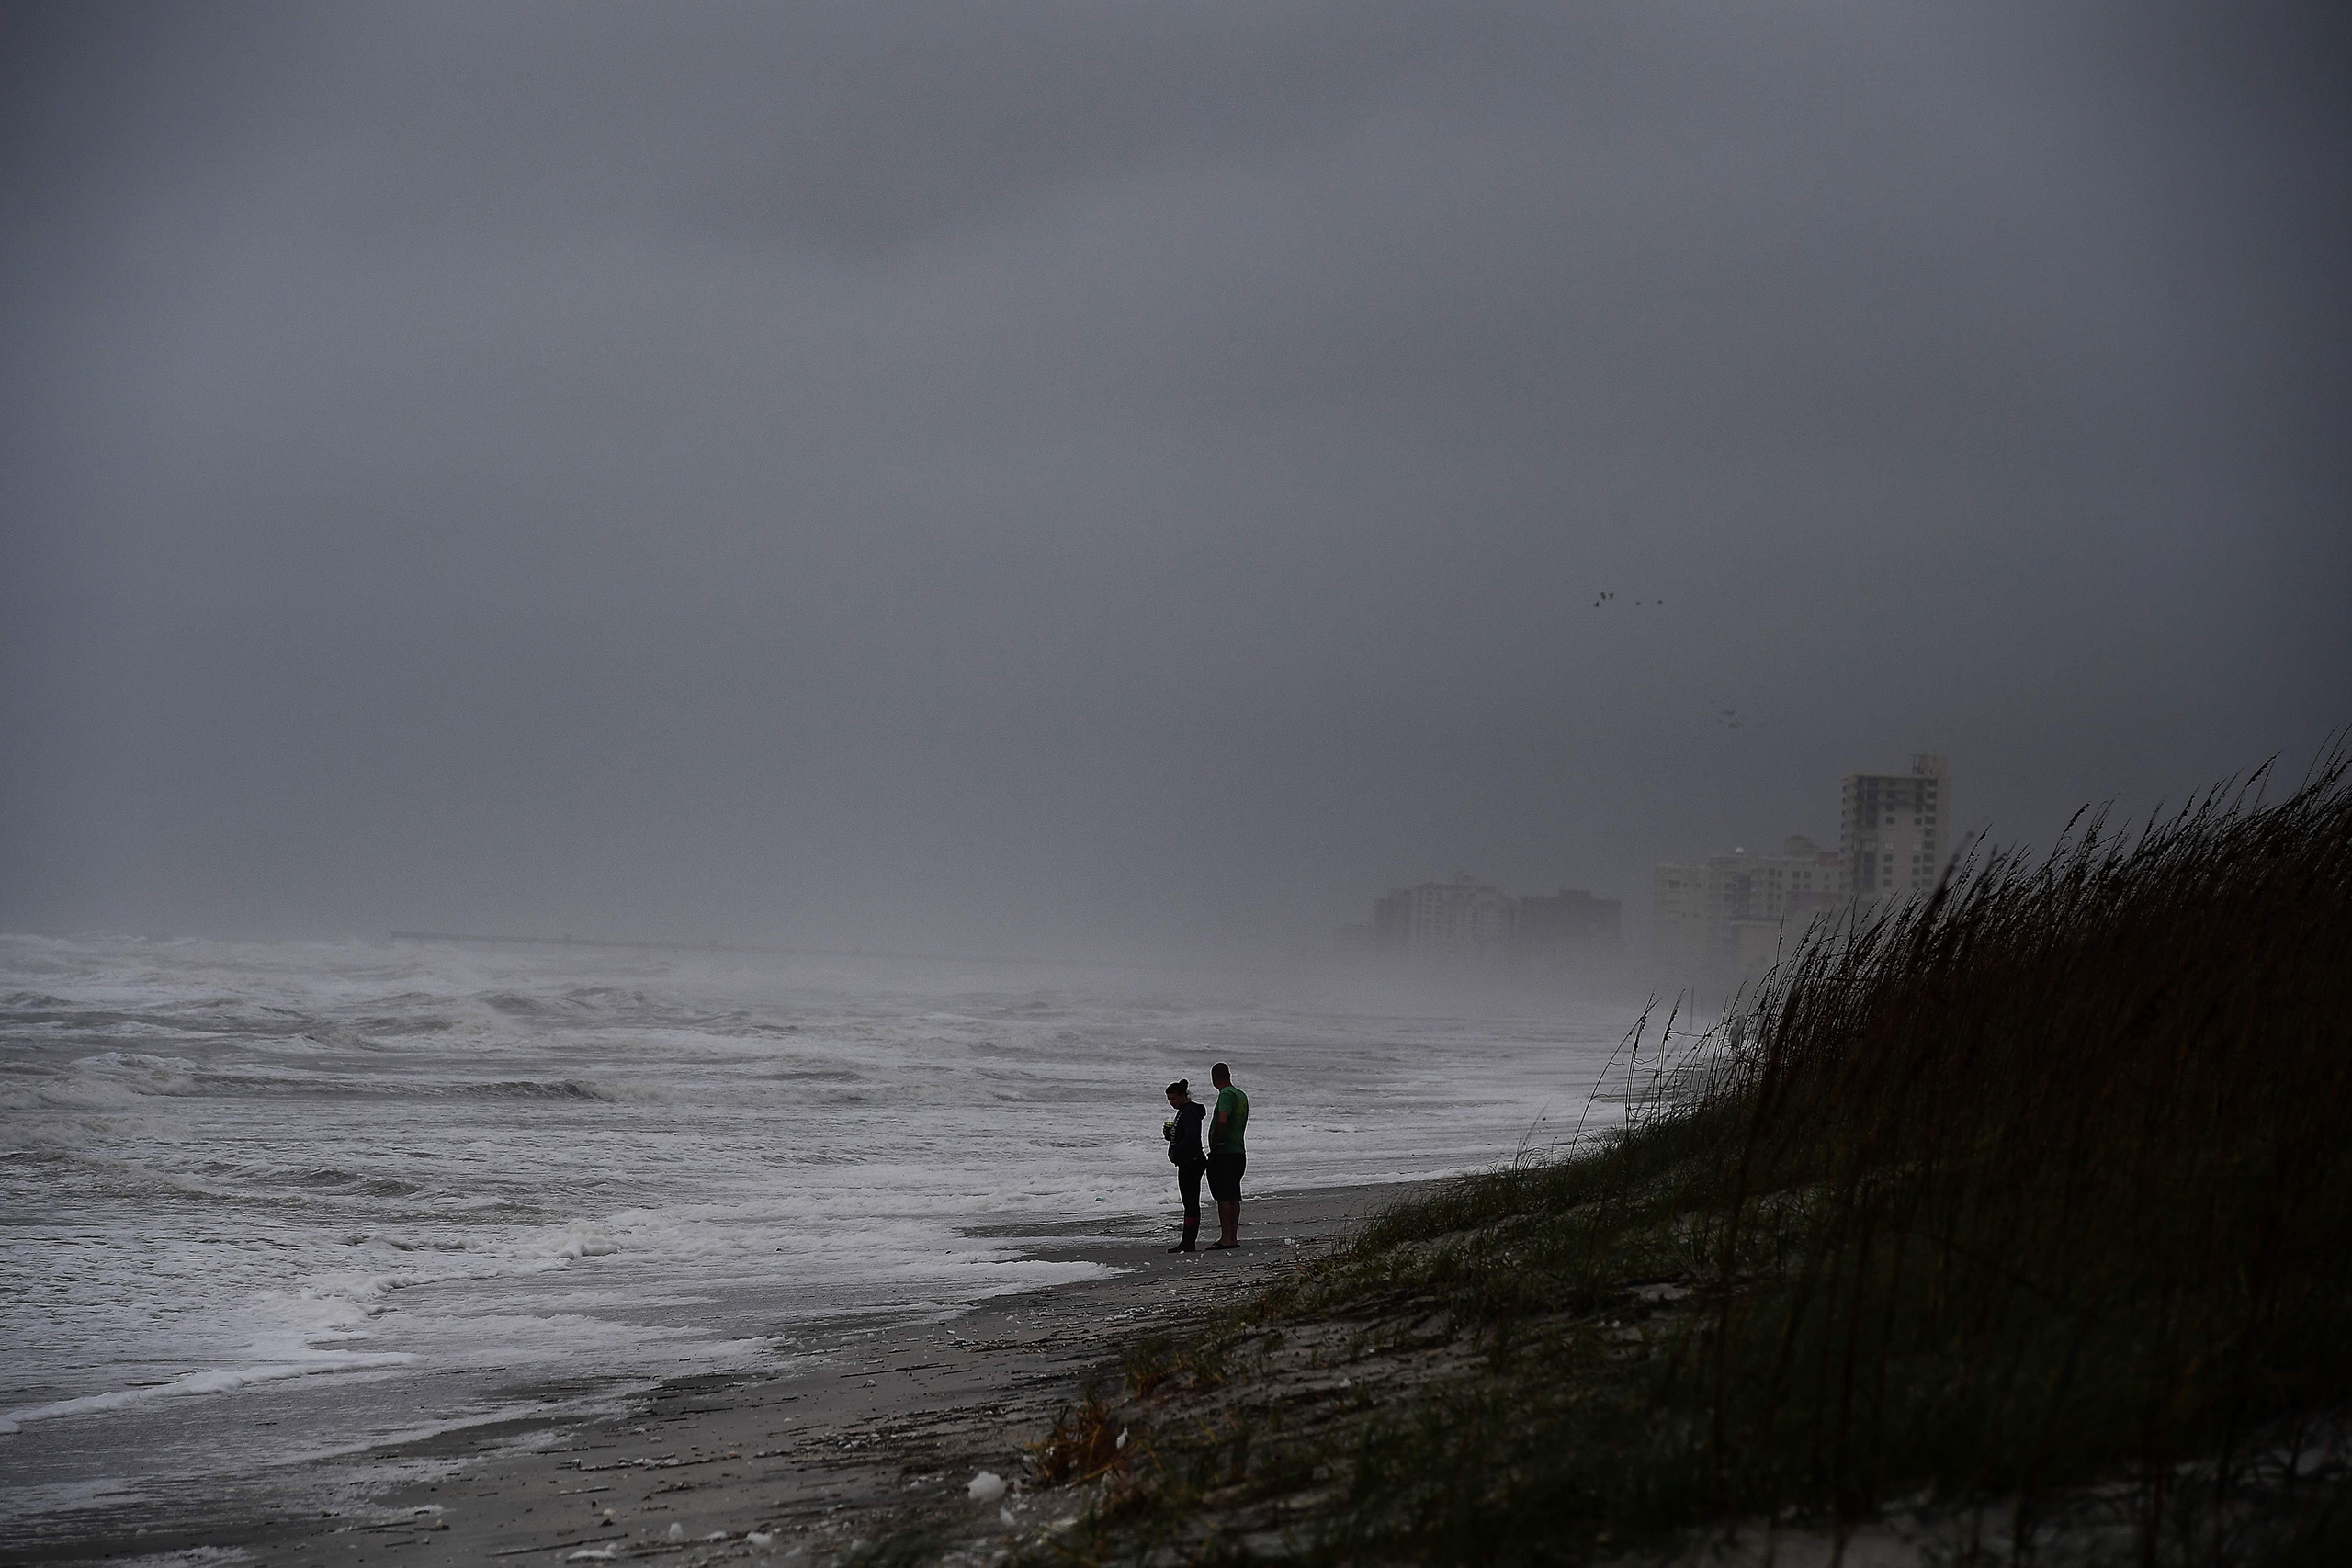 Local residents watch waves at the Atlantic Beach in Jacksonville, Fla., on Oct. 6, 2016.